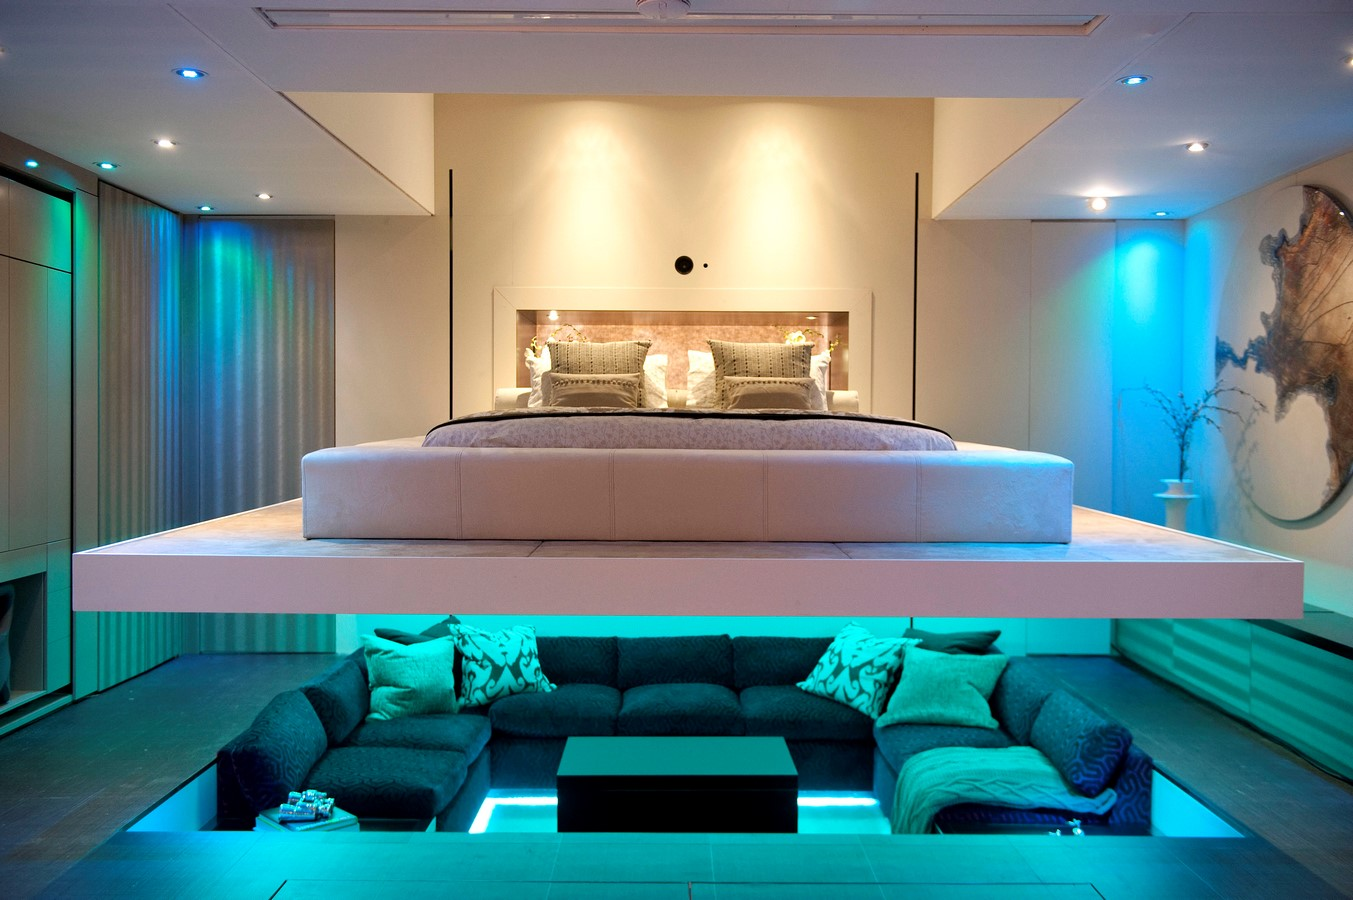 30 Examples of a conversation pit - Sheet16